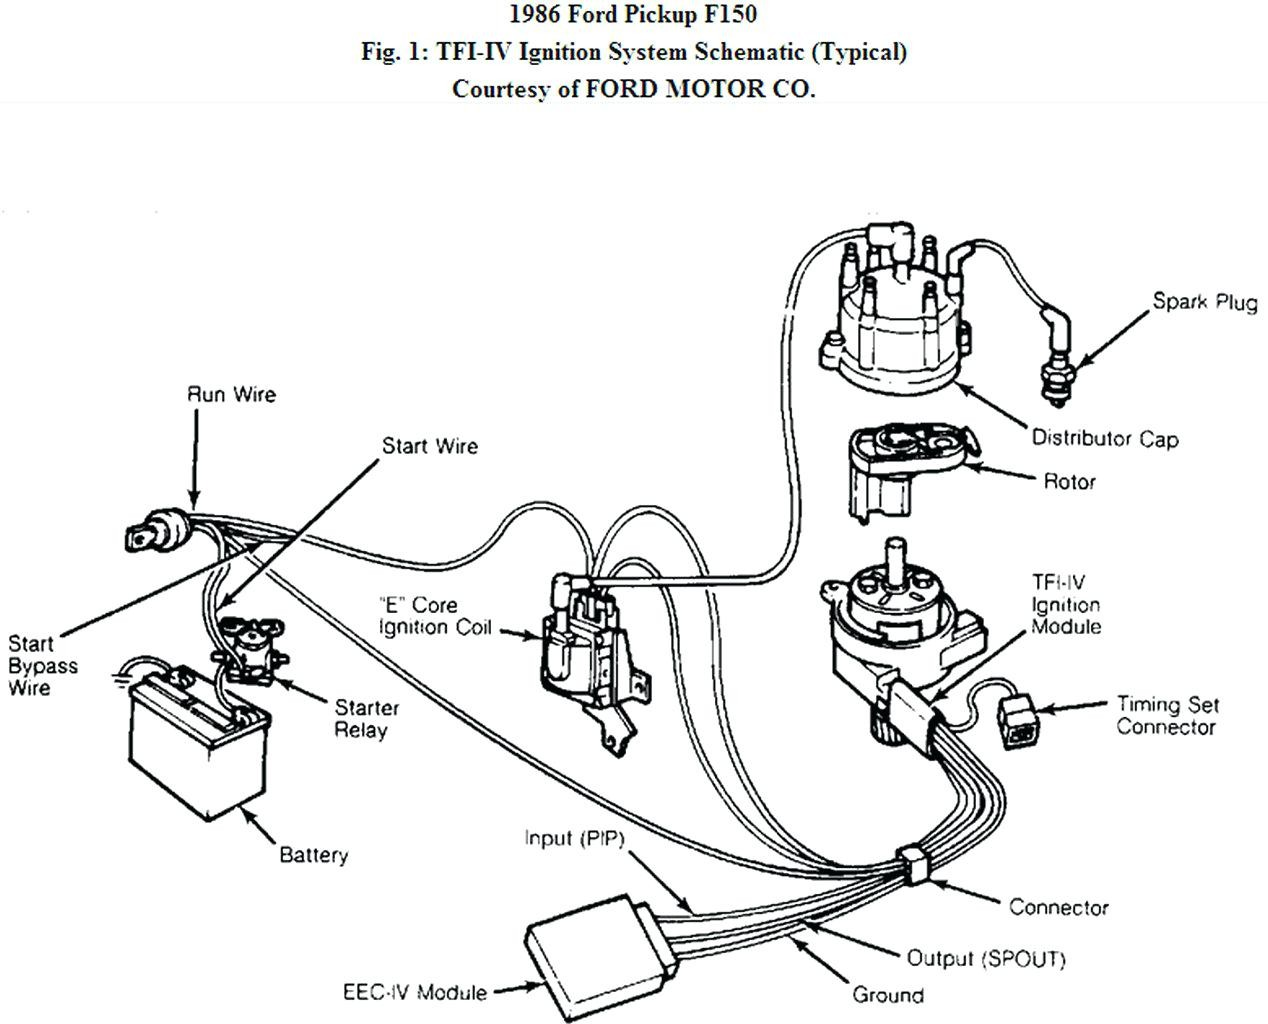 ford f150 solenoid wiring - fuse box in saab 93 for wiring diagram  schematics  wiring diagram schematics